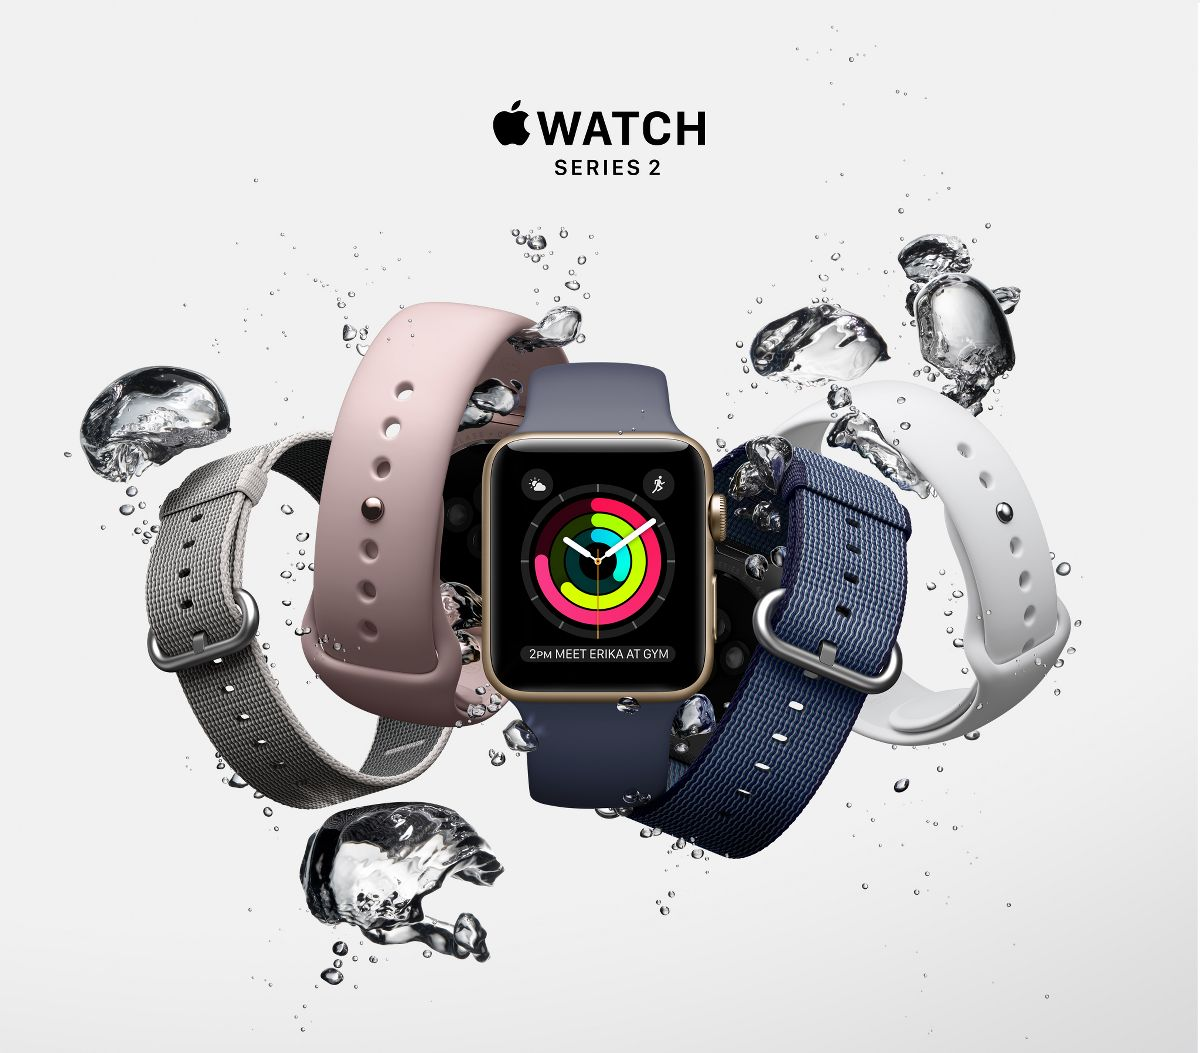 apple watch series 2 42mm mat nhom mau trang day cao su new hinh anh 1